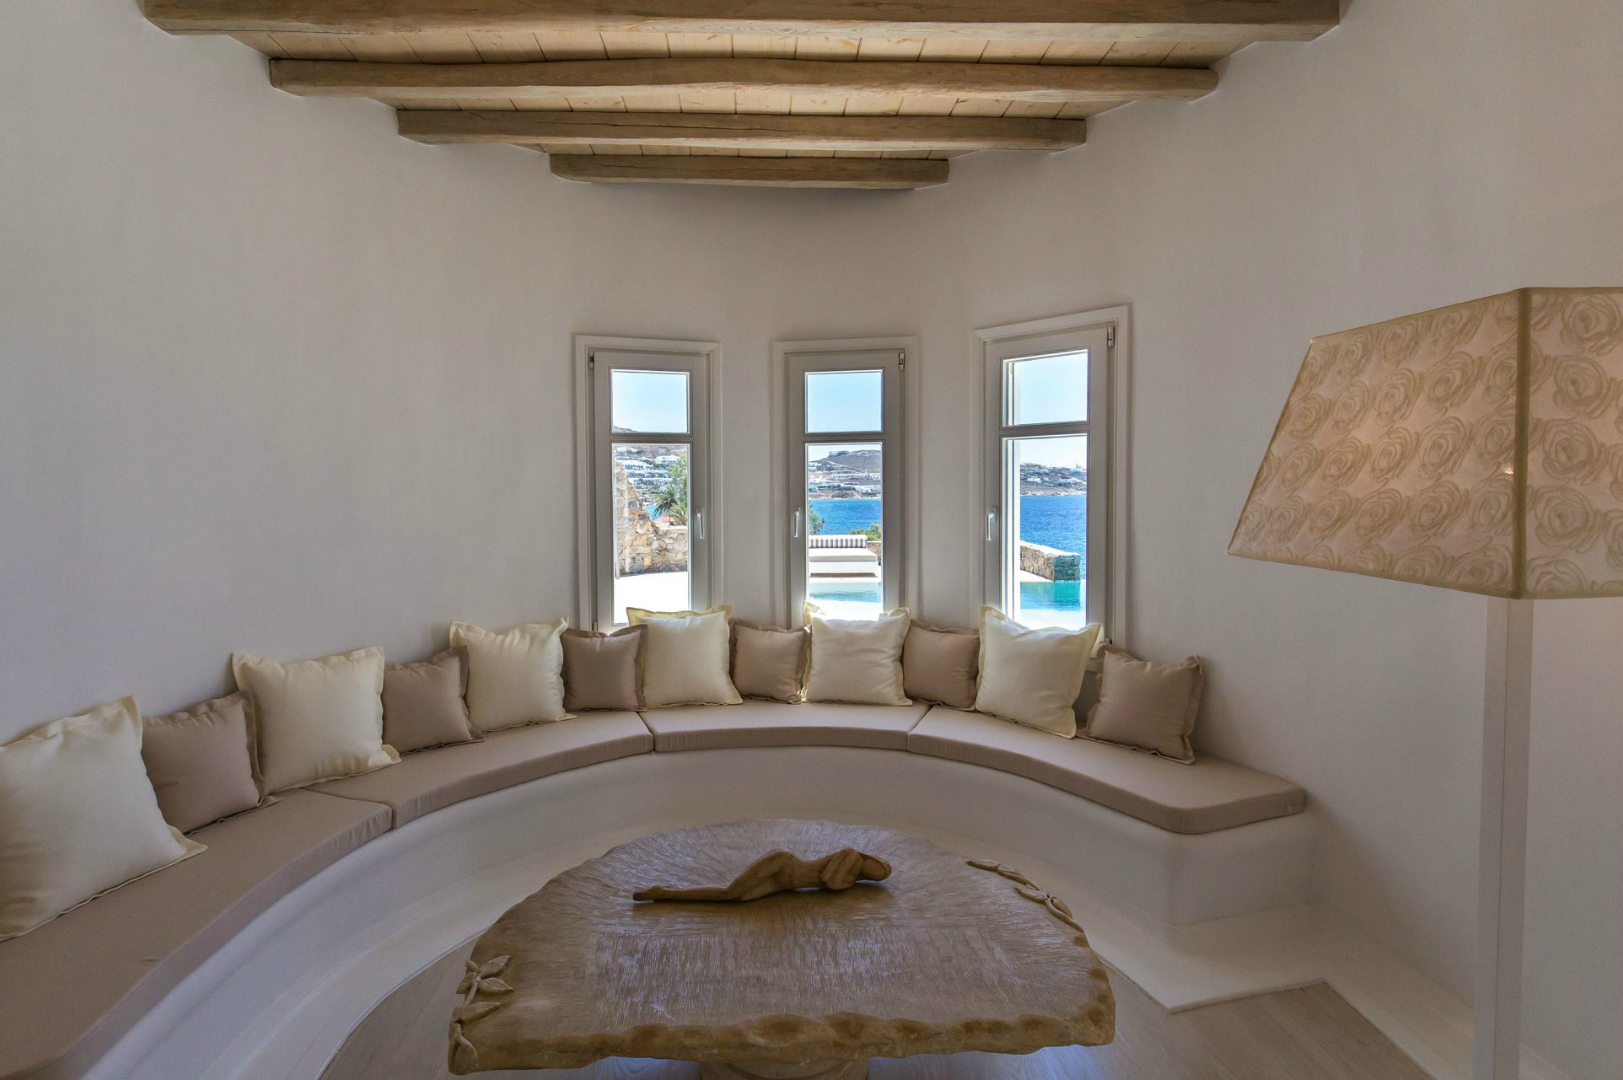 luxury-mykonos-kymothoe1 (15).jpg